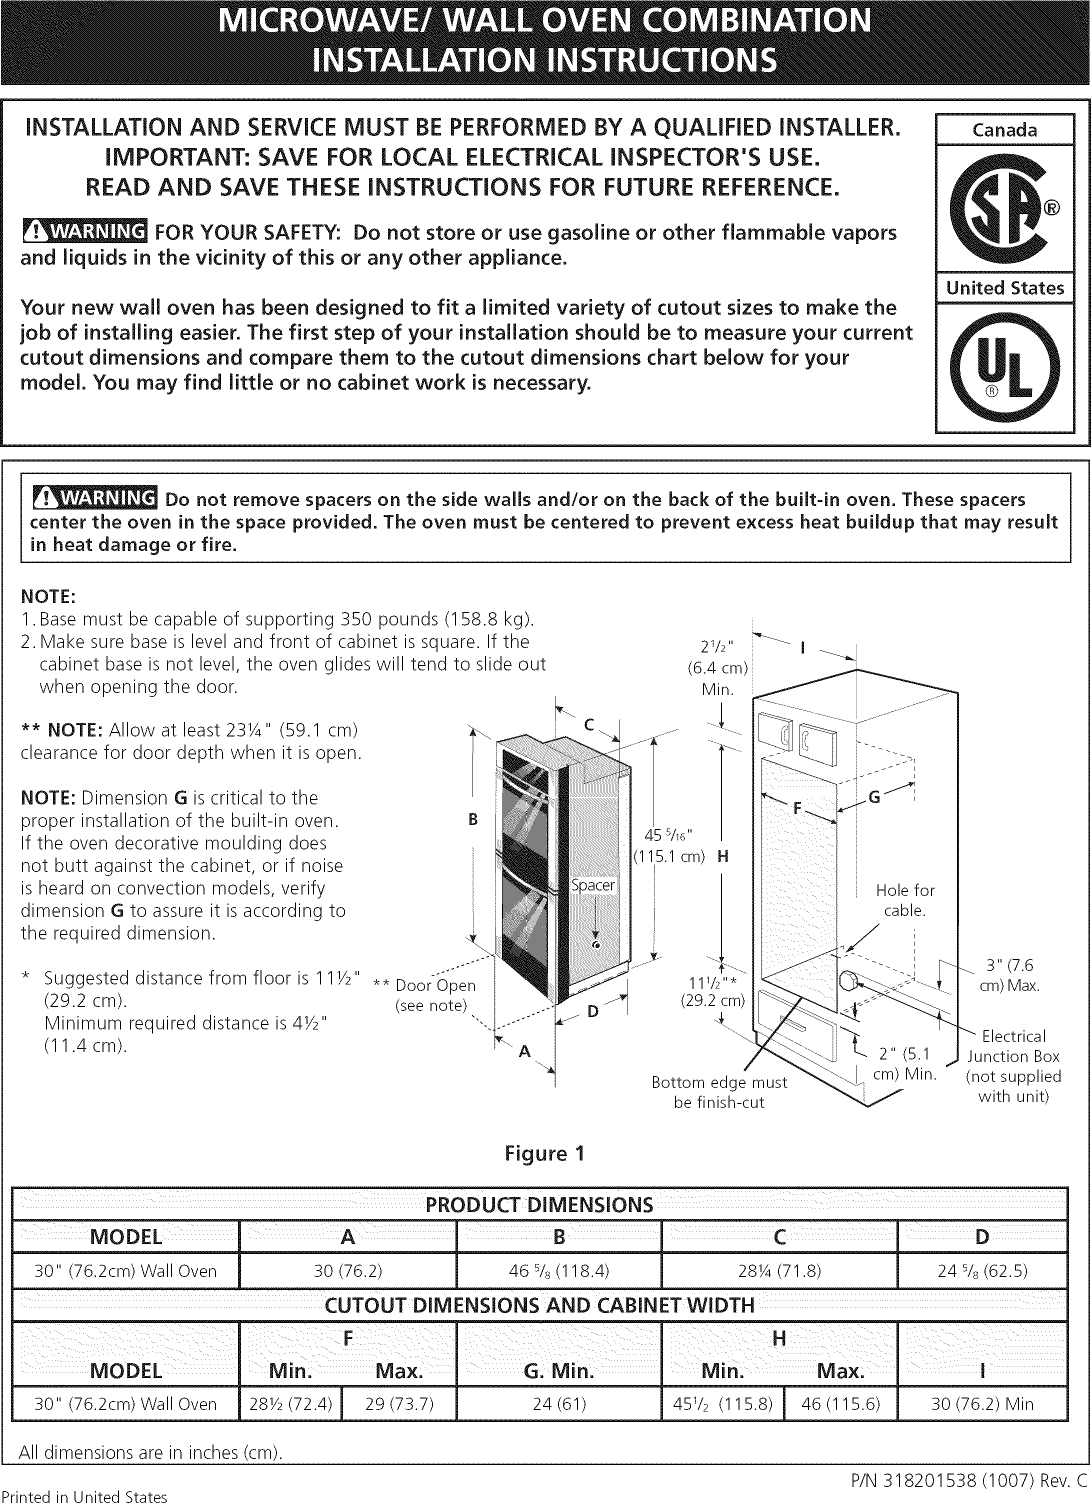 Electrolux E30mc75jps3 User Manual Wall Oven Microwave Combo Manuals Wiring Diagram And Guides 1102508l